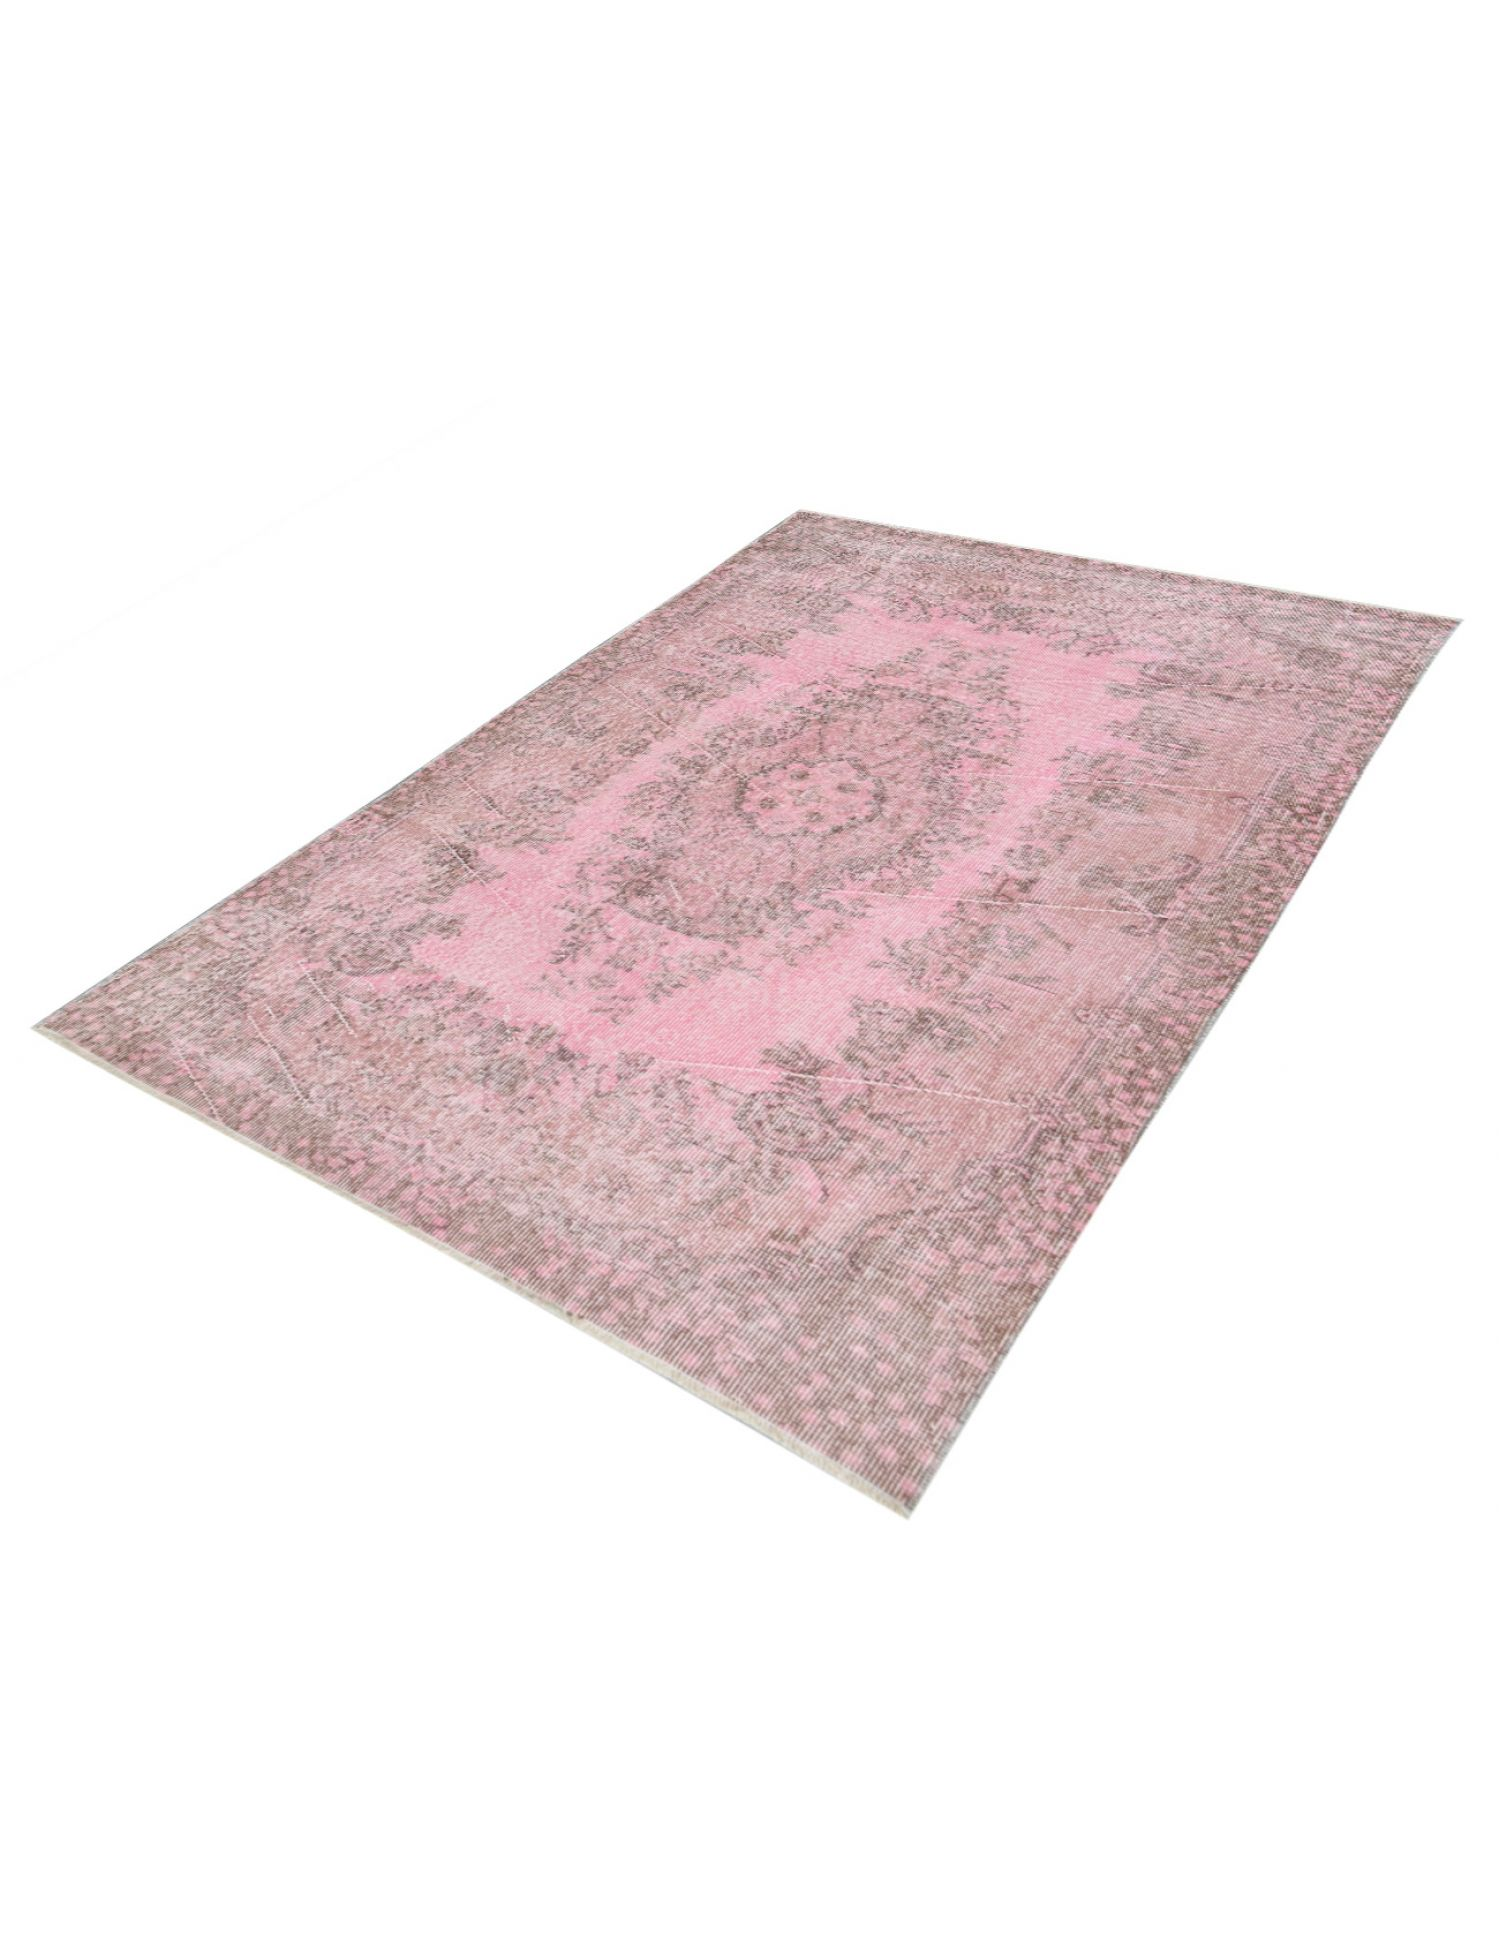 Vintage Carpet  purple <br/>222 x 114 cm